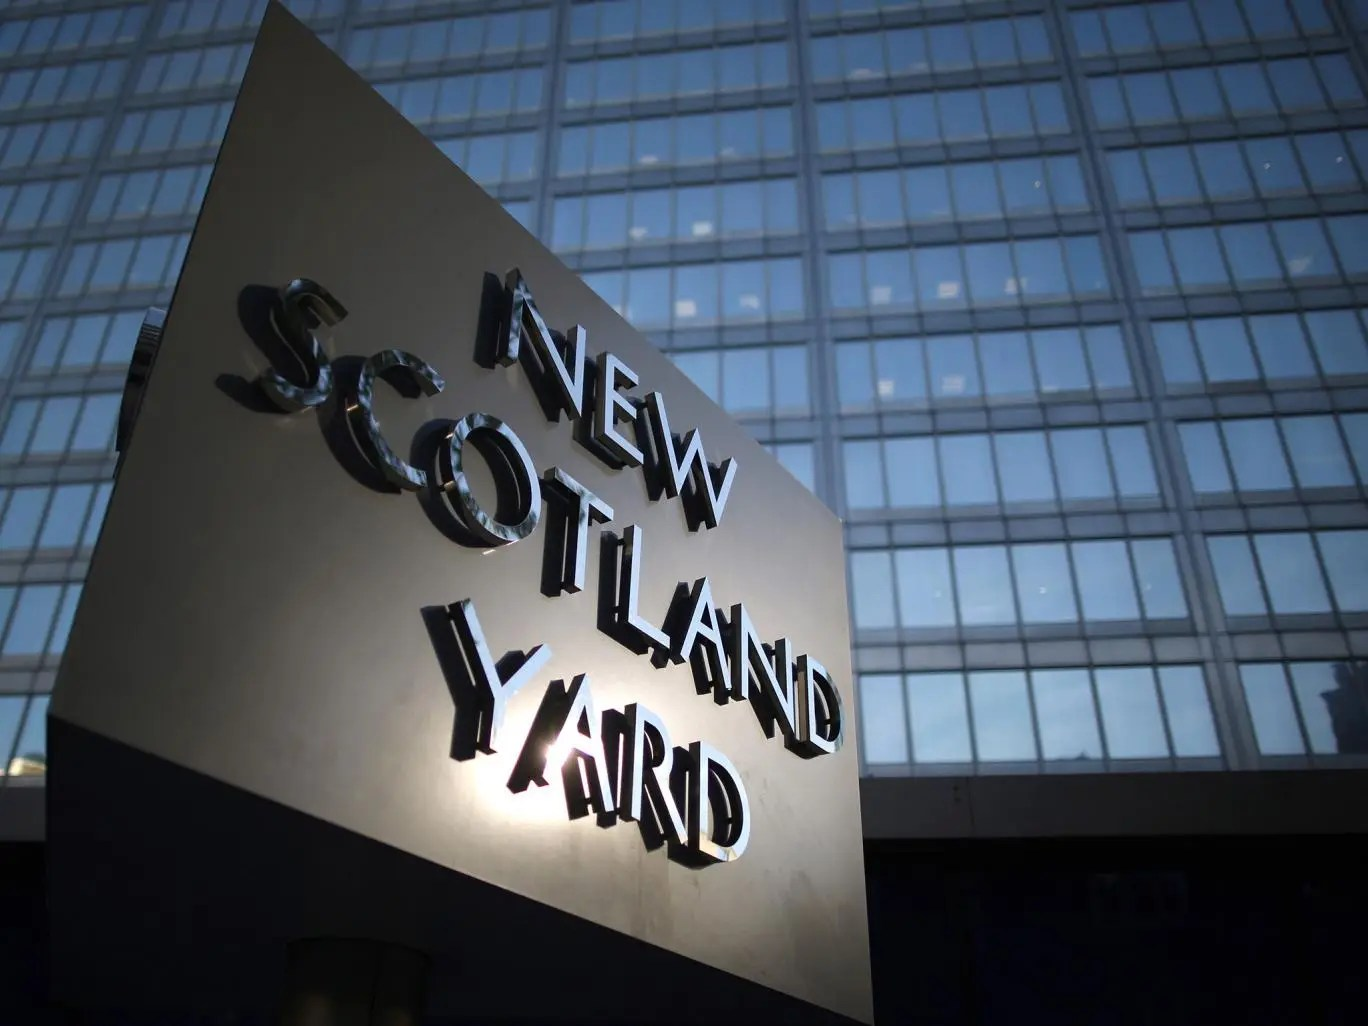 Scotland Yard said the 30-year-old man had been arrested on 10 February on suspicion of affray and that inquiries are continuing